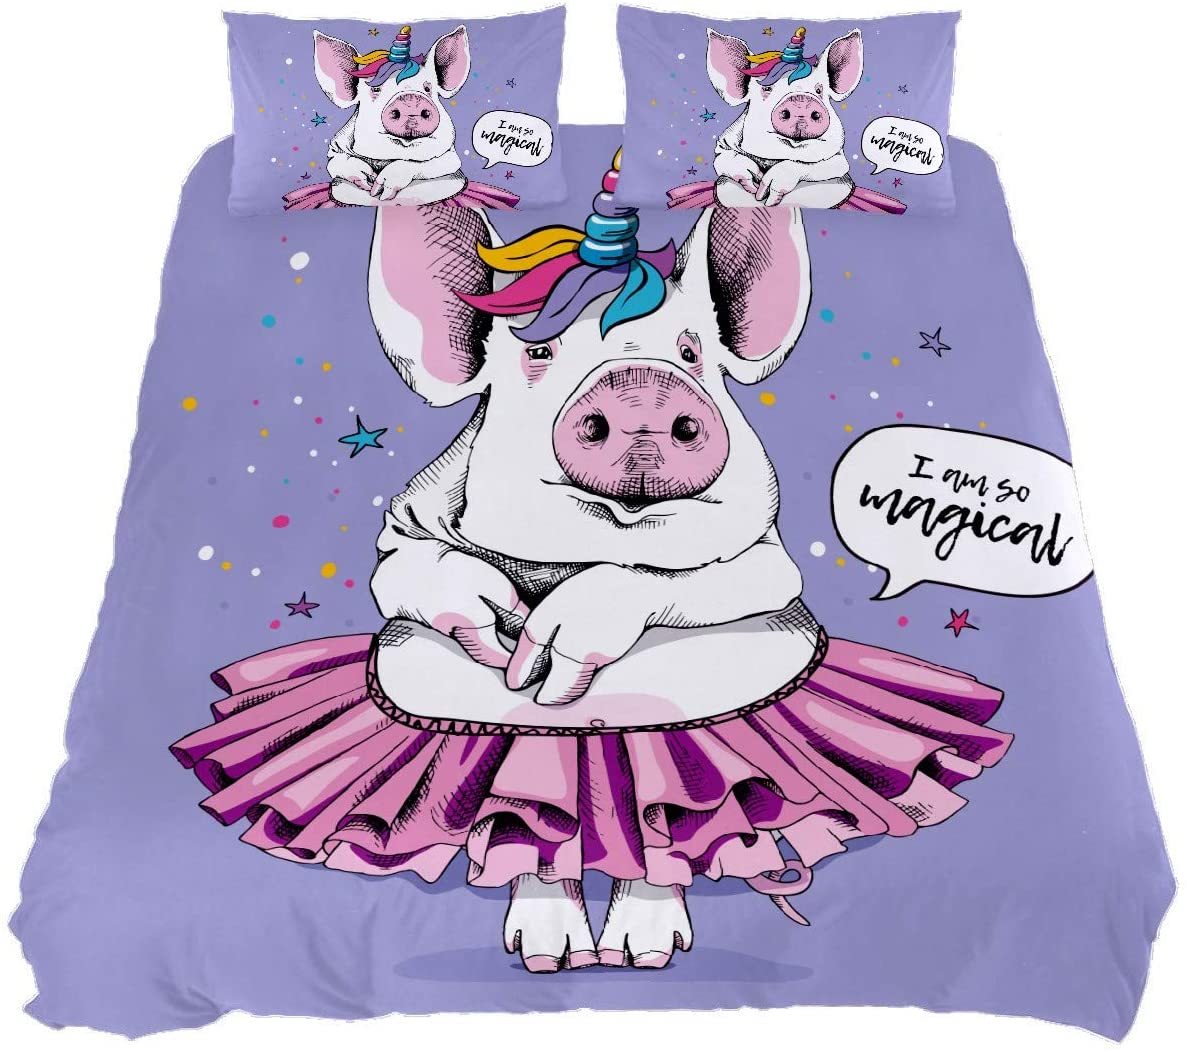 N\O Unicorn Comforter Set 3 Piece Queen Bedding Set Cute Pig Tutu Stars Fade Resistant Duvet Cover Set Soft Lightweight Home Decor for Bedroom Girls Boys Kid's Room with 2 Pillowcases